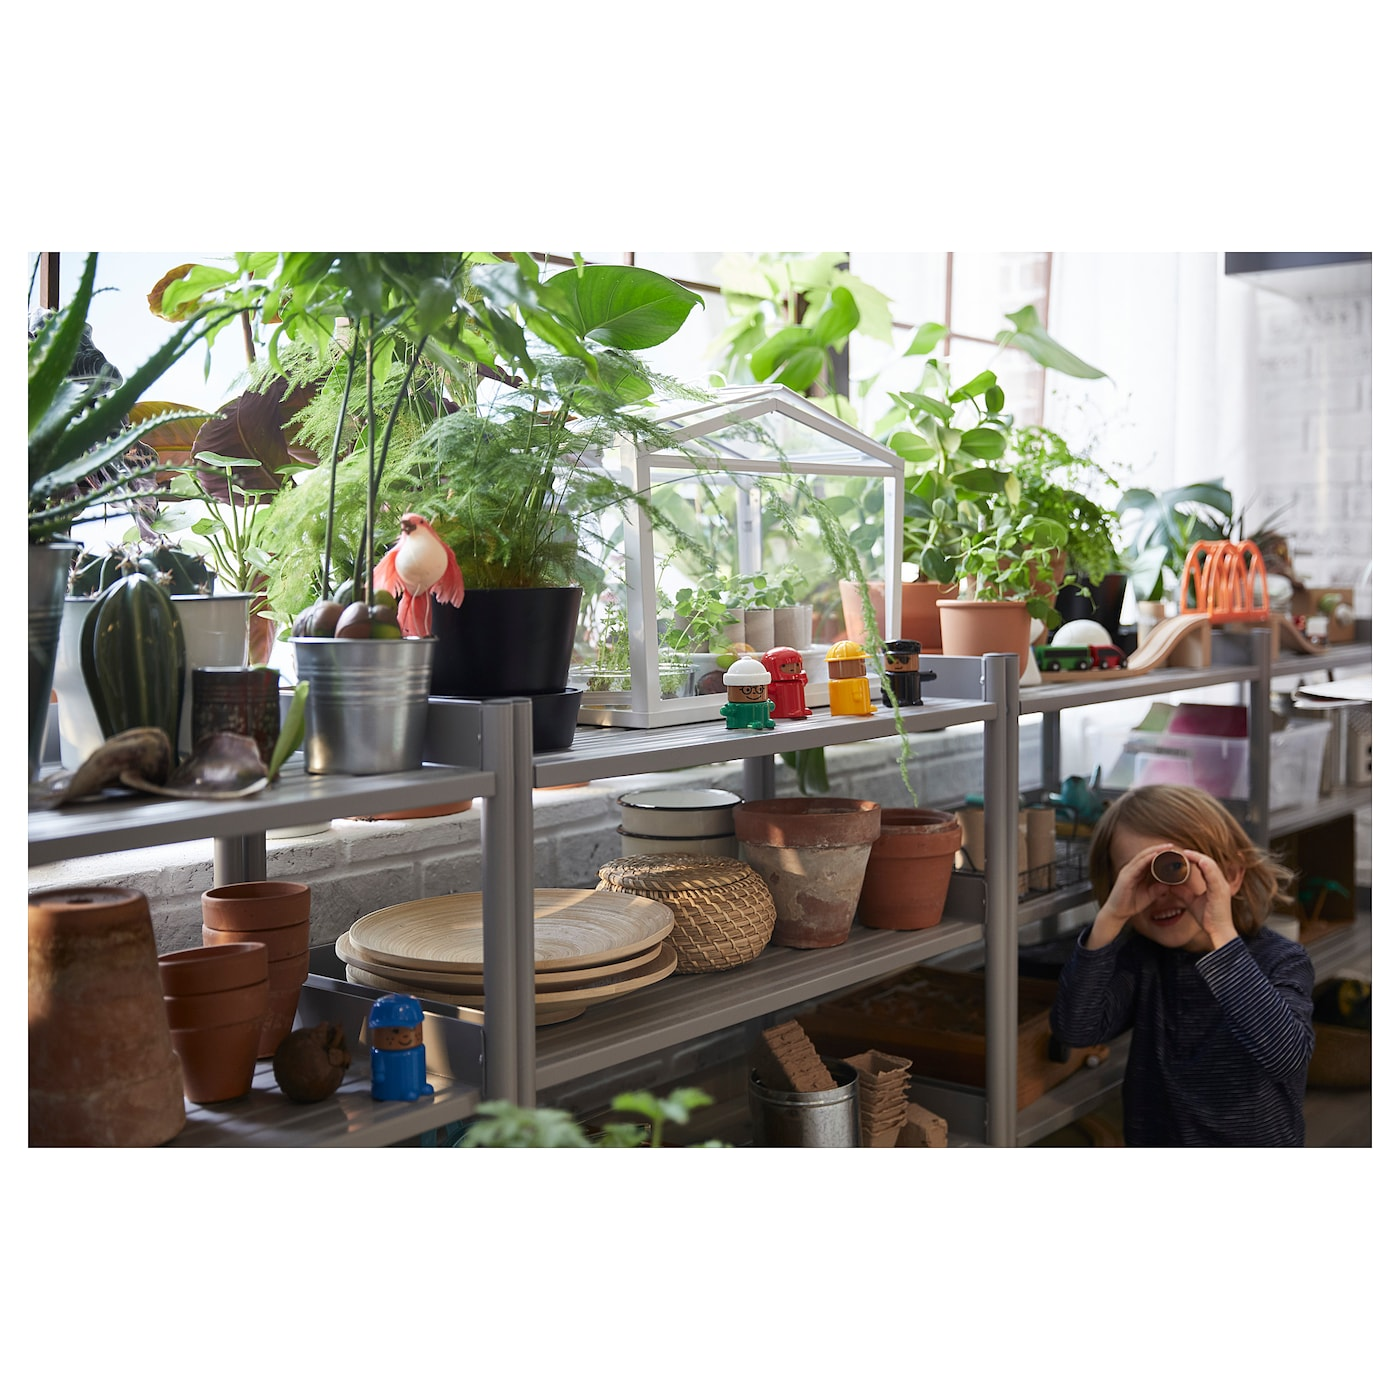 IKEA SOCKER greenhouse Provides a good environment for seeds to sprout and plants to grow.